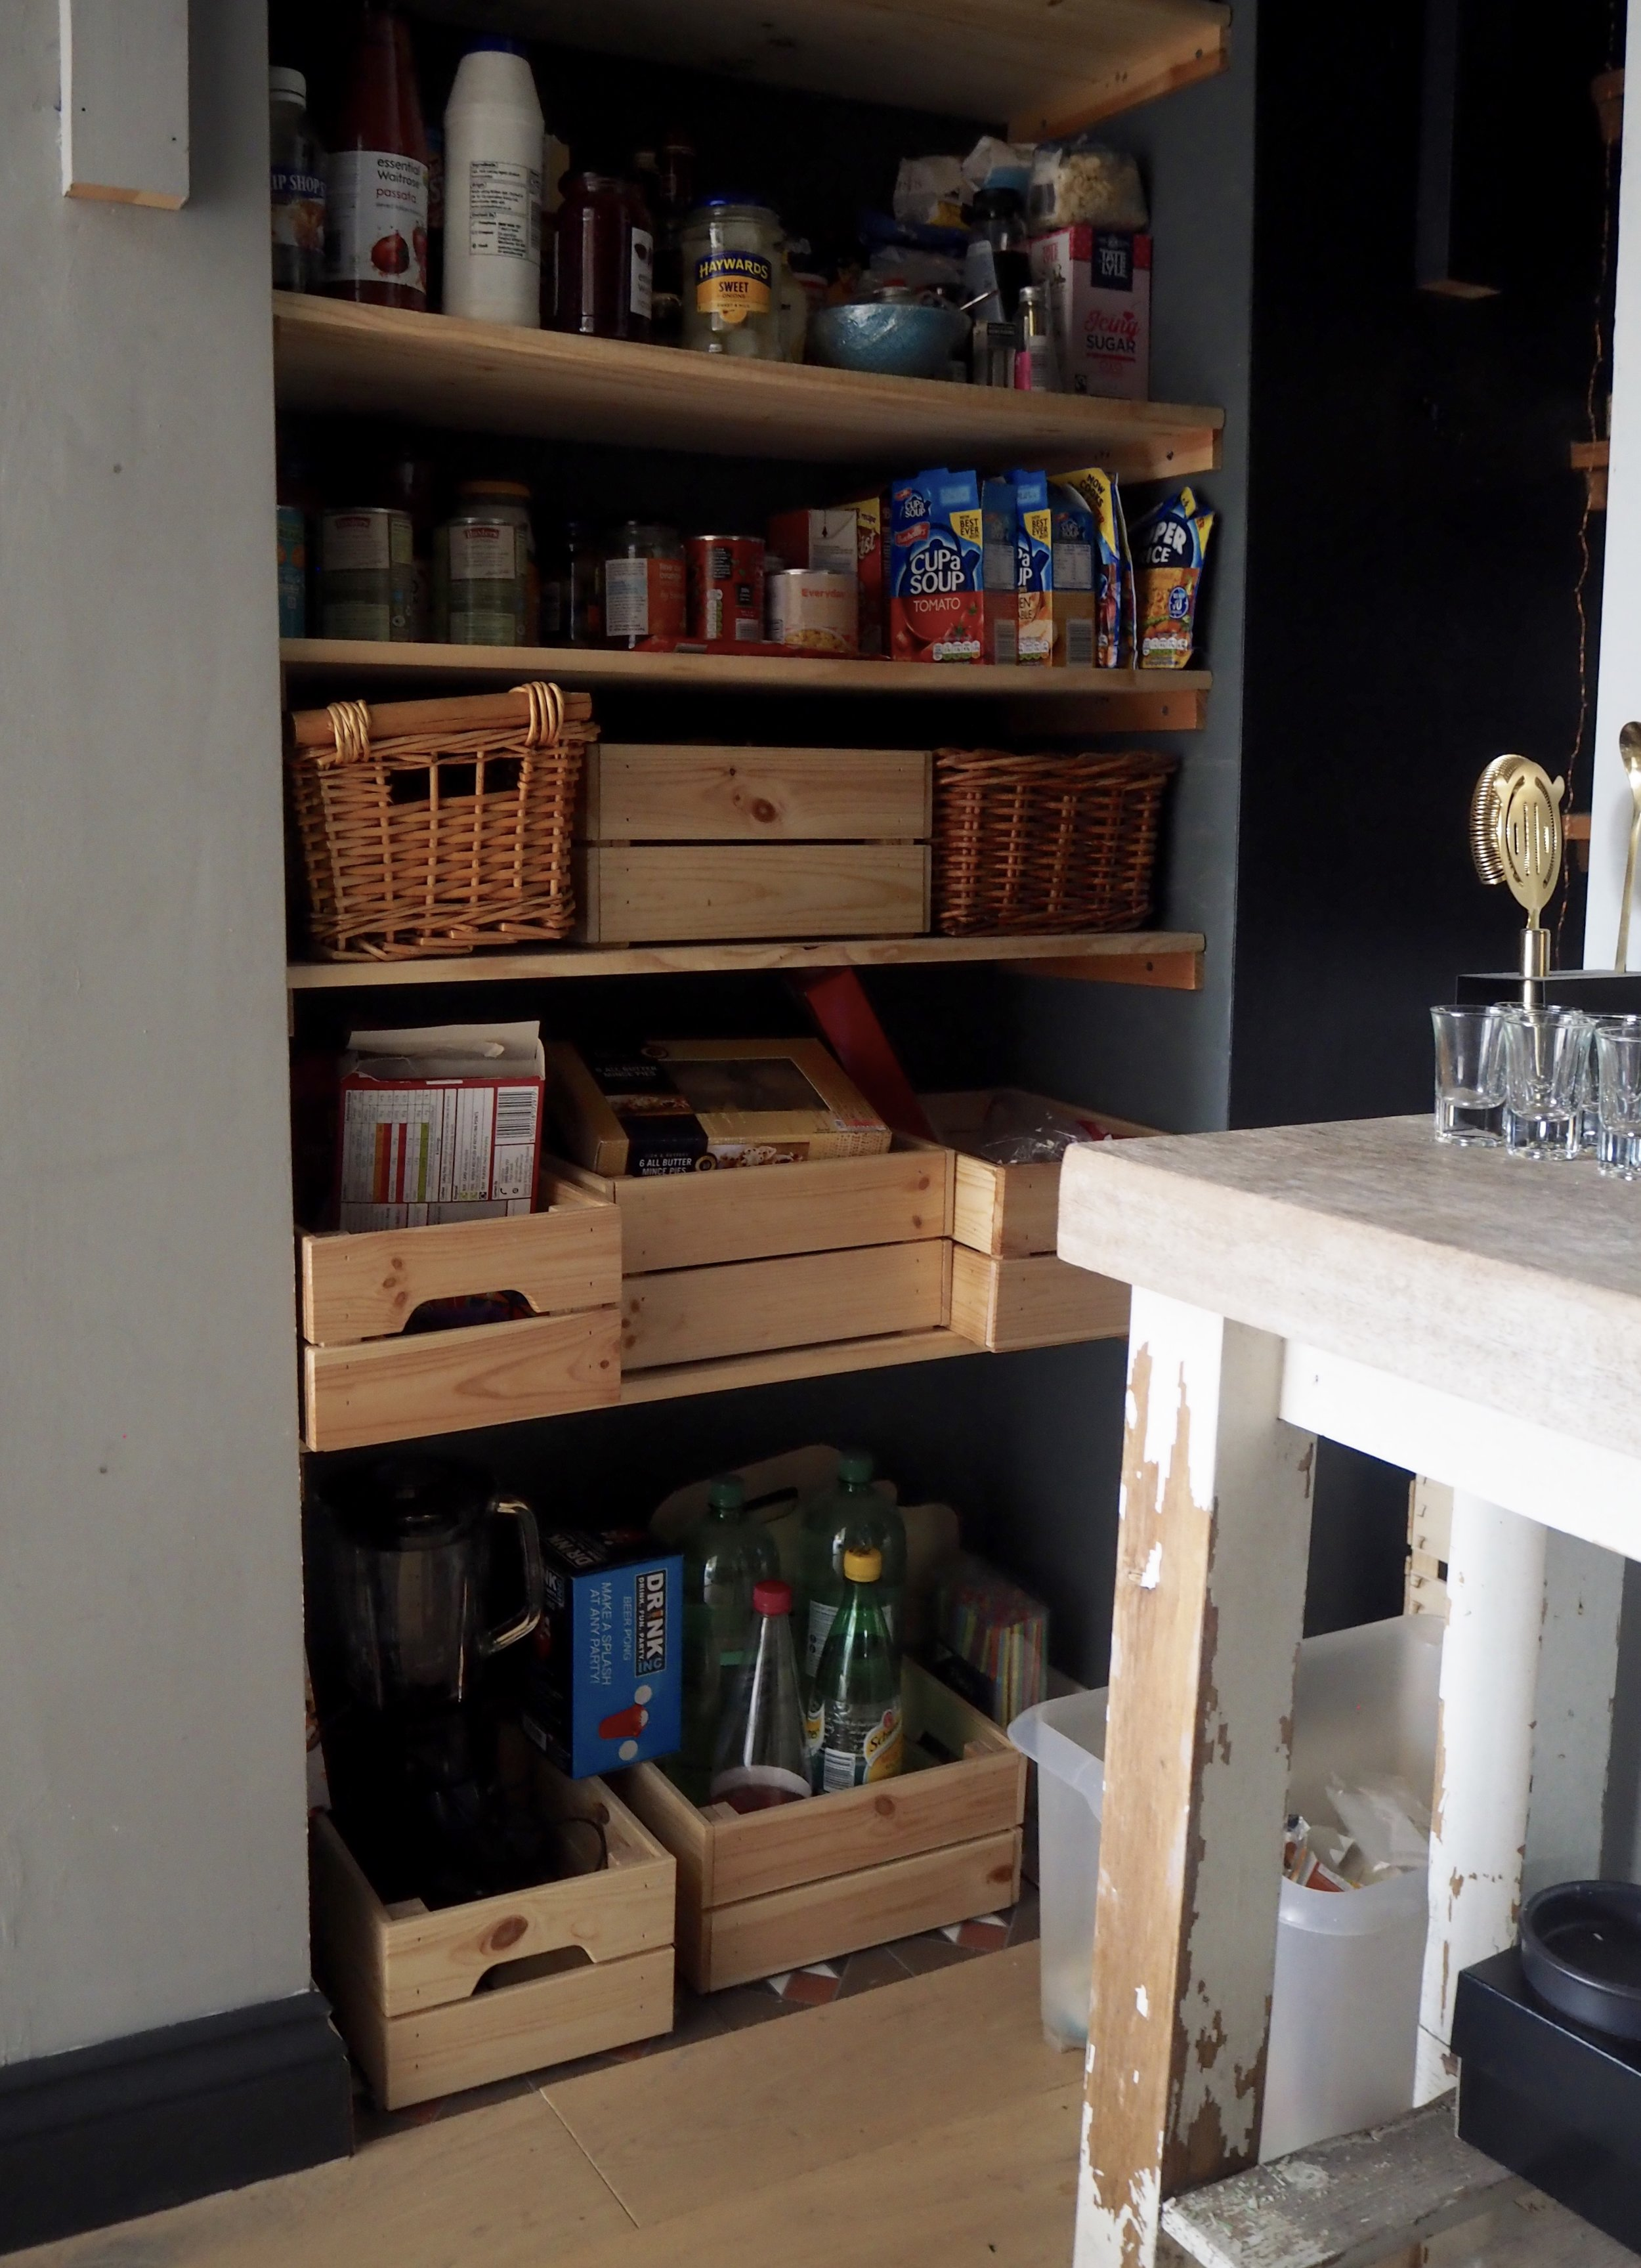 ahhhh 'Beer Pong' a larder cupboard essential it would seem......